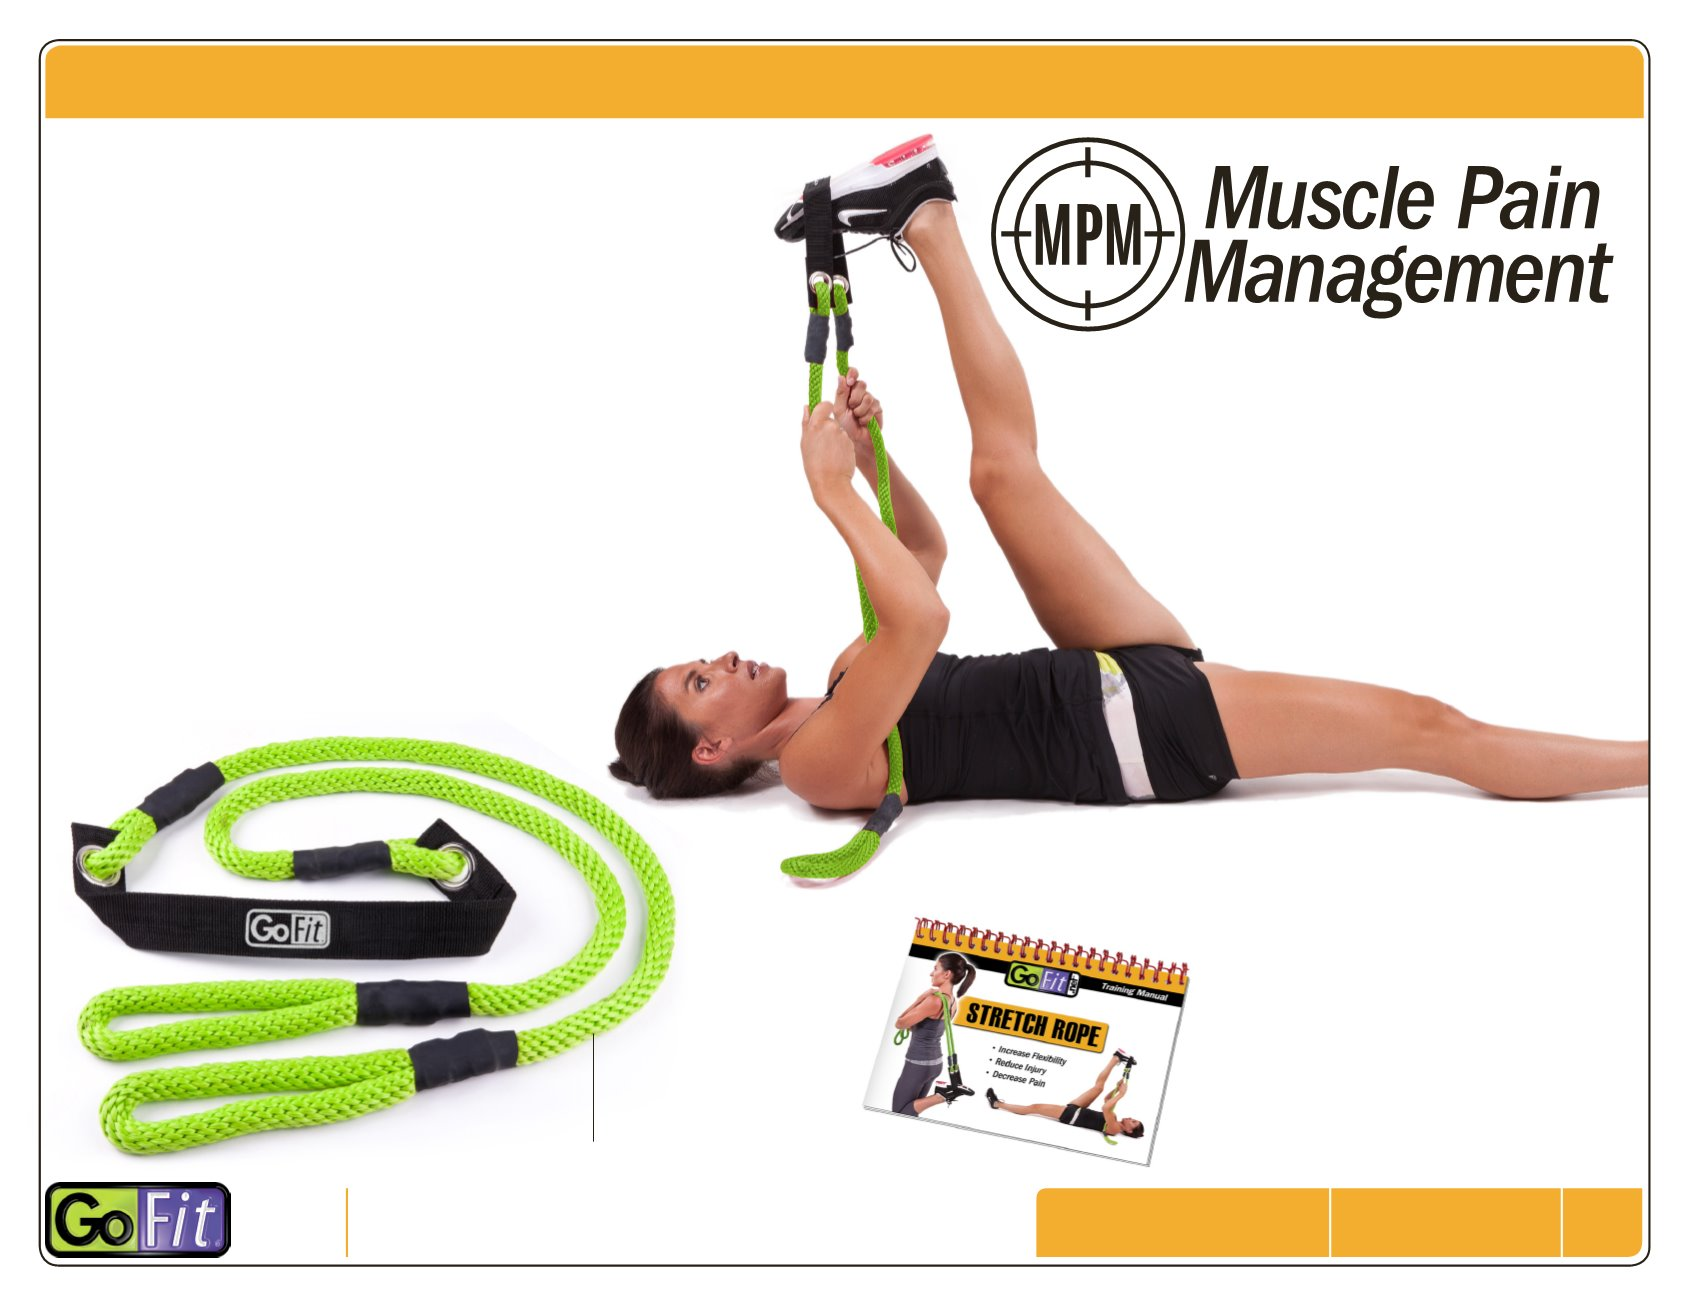 Go-Fit Stretch Rope